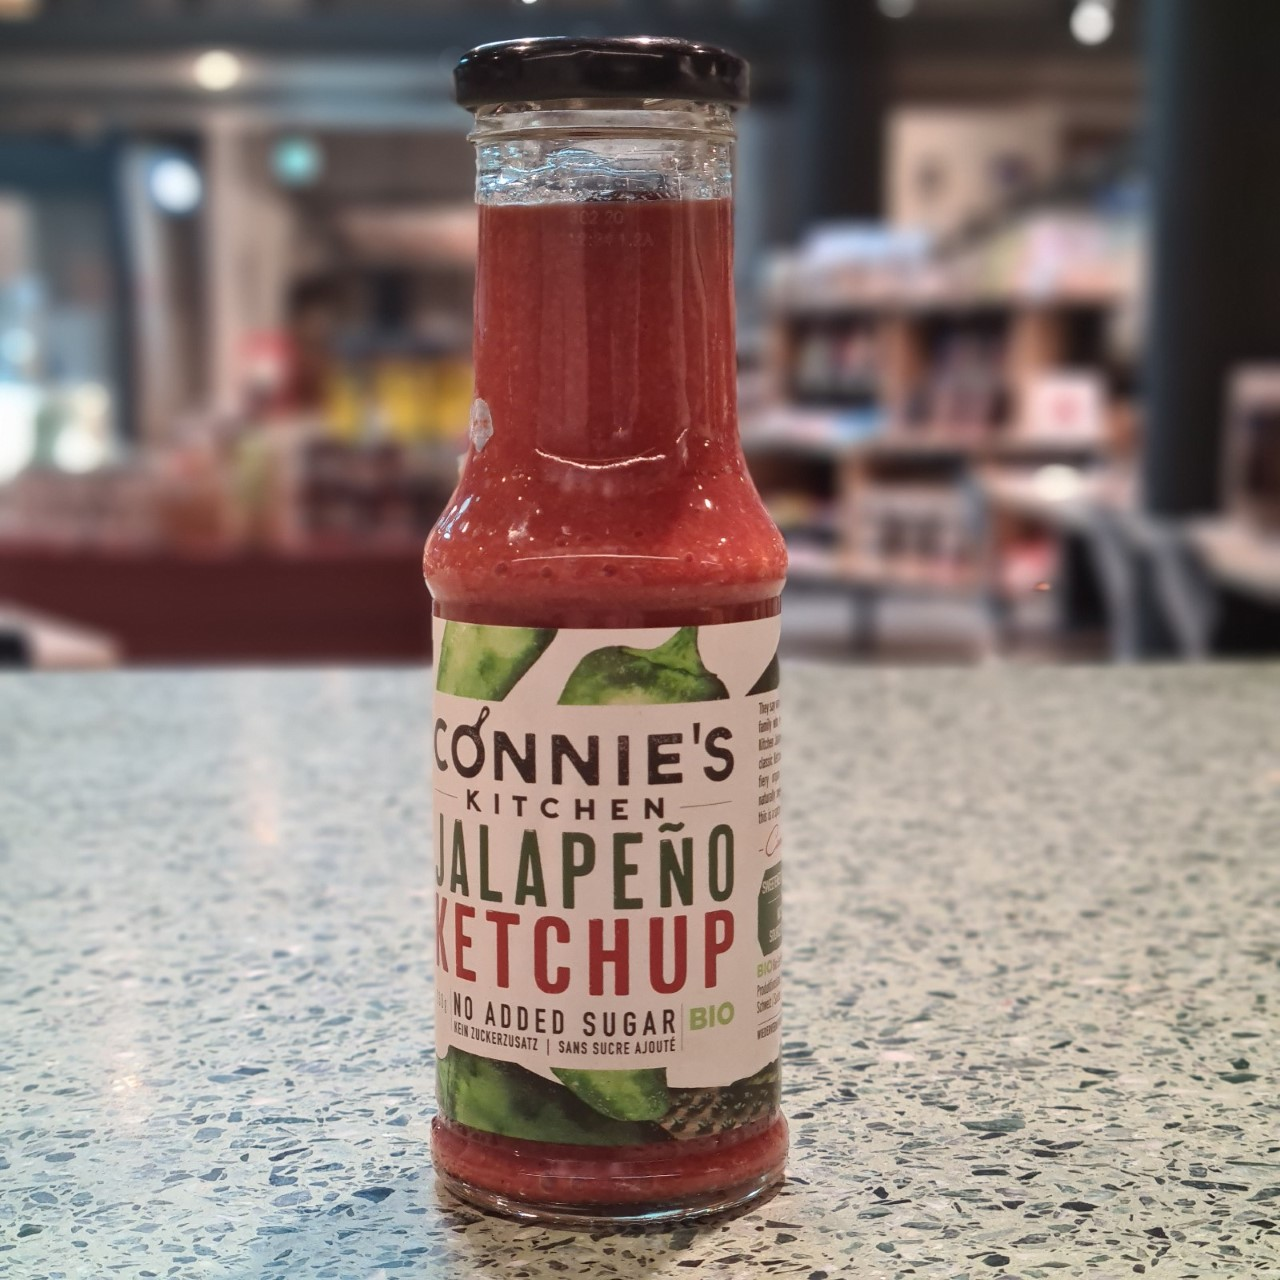 Connie's Kitchen Jalapeno Ketchup